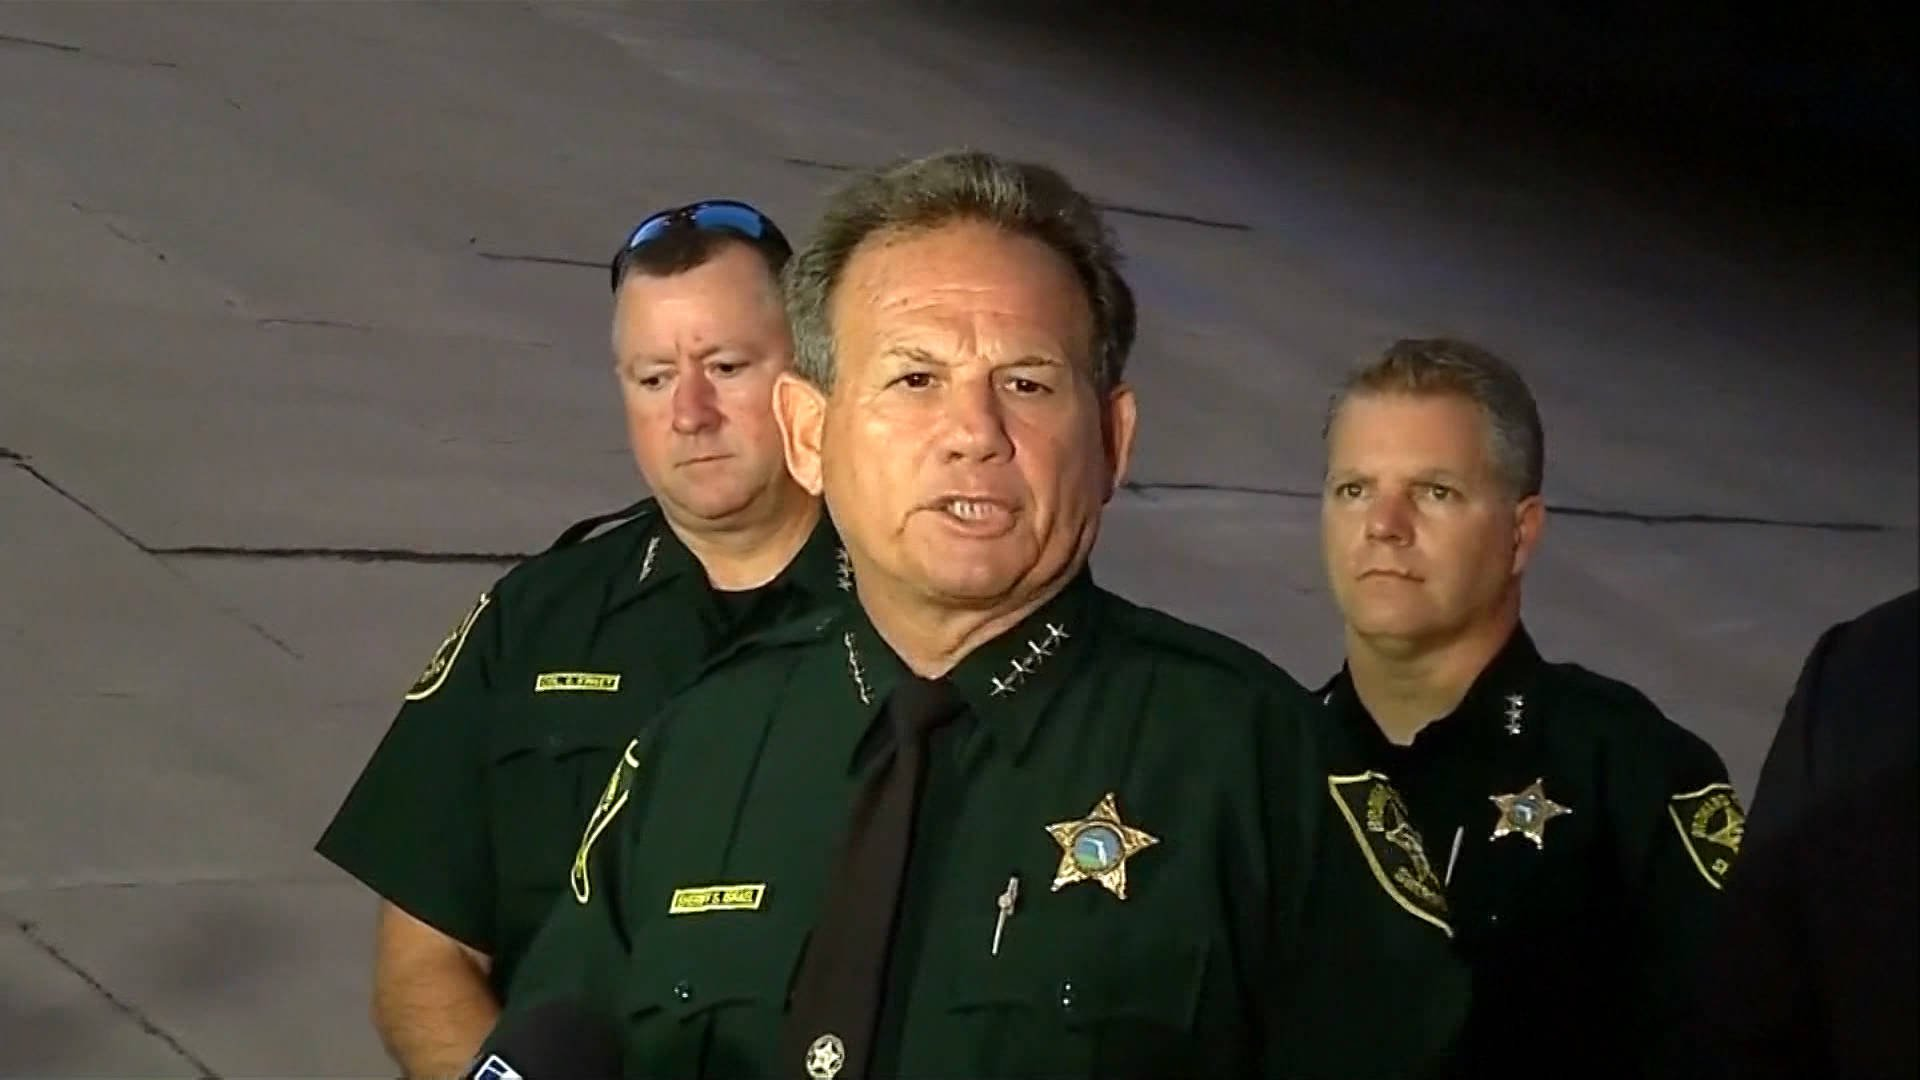 According to a 2014 report, Broward County Sheriff Scott Israel, who has come under increased scrutiny over his deputy's handling of the Parkland mass shooting and the policies that appear to have shielded the shooter from serious consequences leading up to the massacre, used to insist on being chauffeured around by an armed bodyguard because …